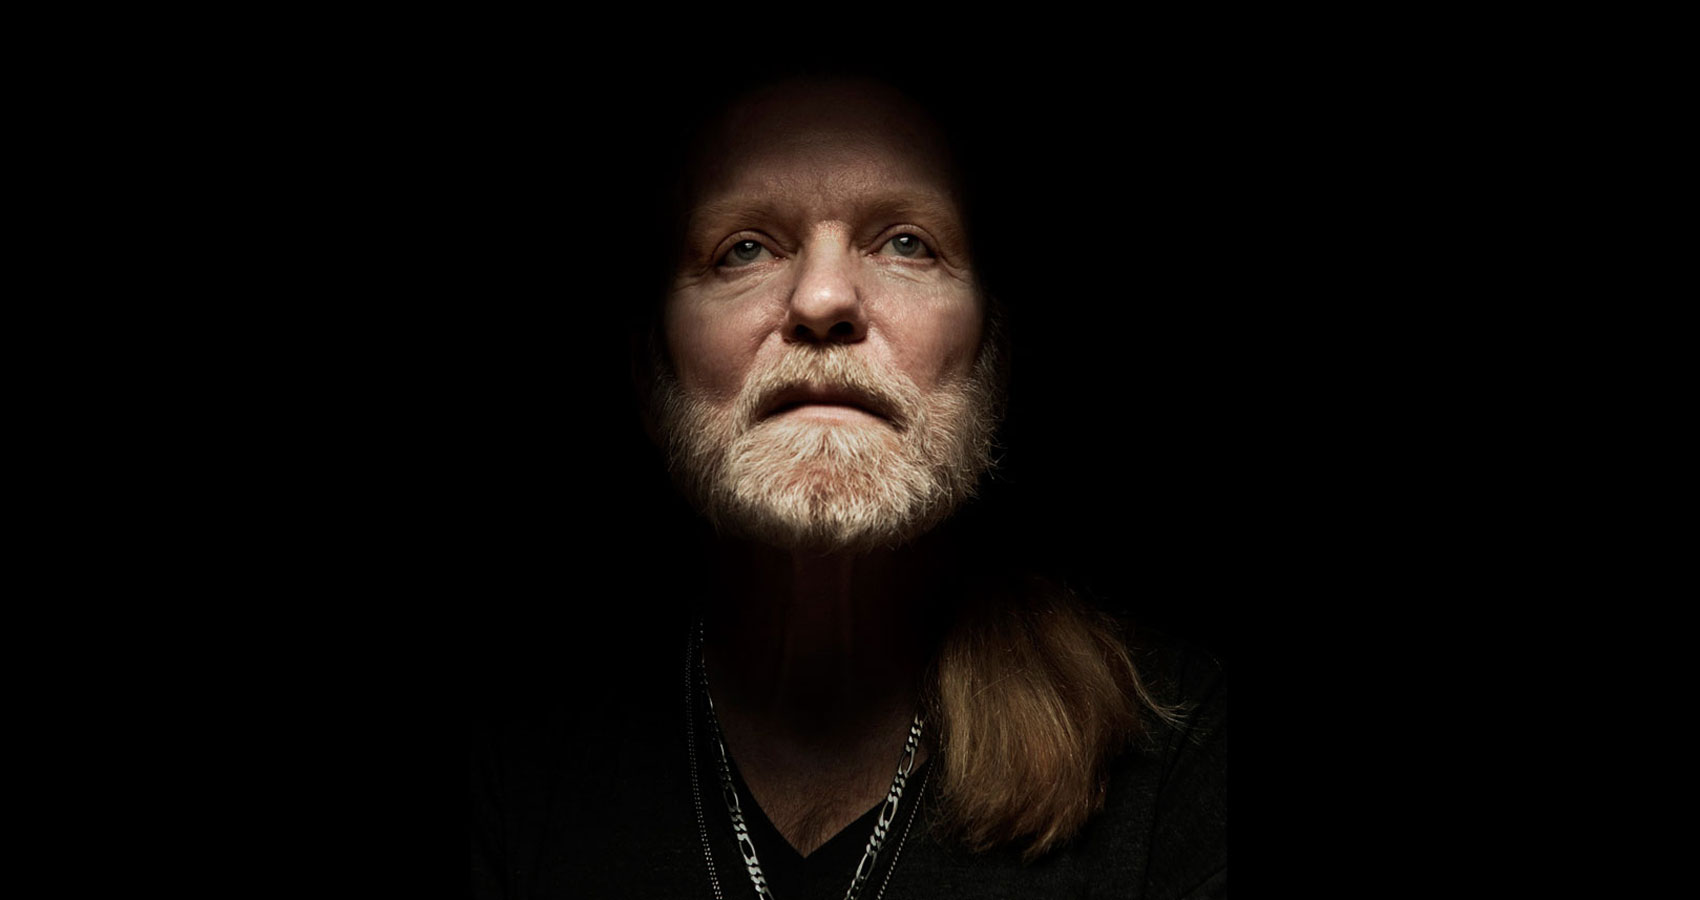 BLUE WIND / TRIBUTE TO GREGG ALLMAN written by TM DiSarro at Spillwords.com